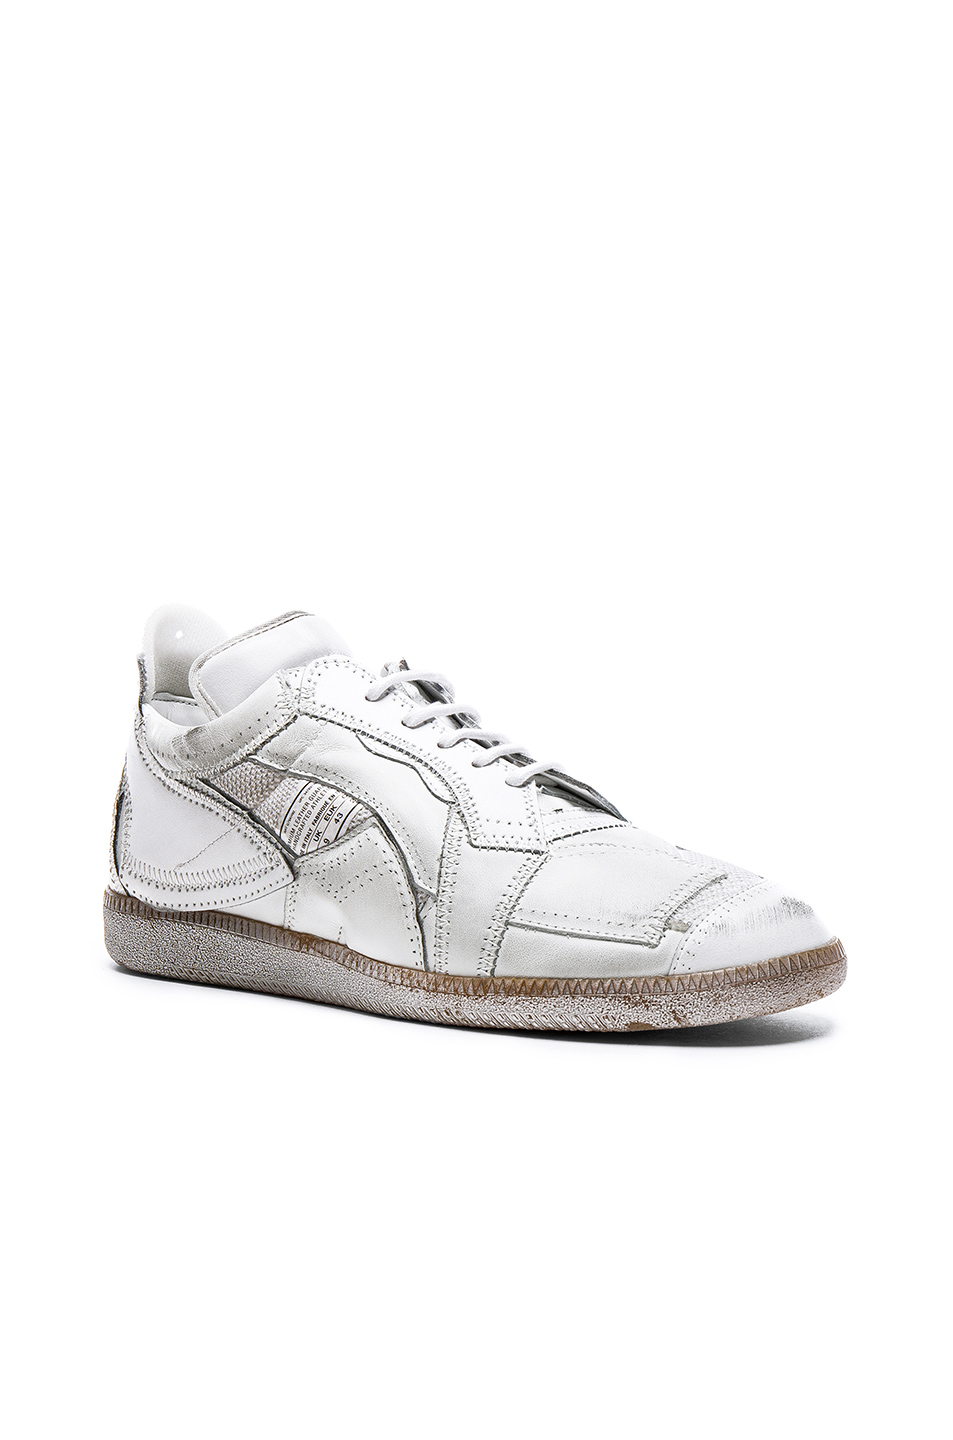 Maison Margiela Limited Edition Mixed Soft Leather & Mesh Sneakers in White